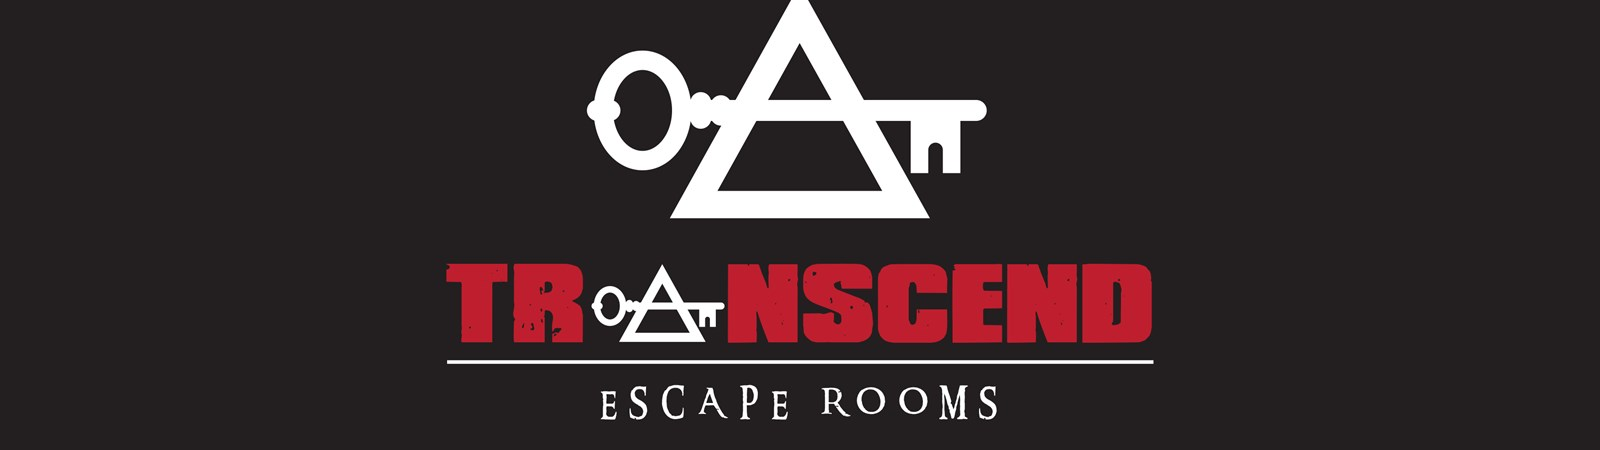 Transcend Escape Rooms Final with Key